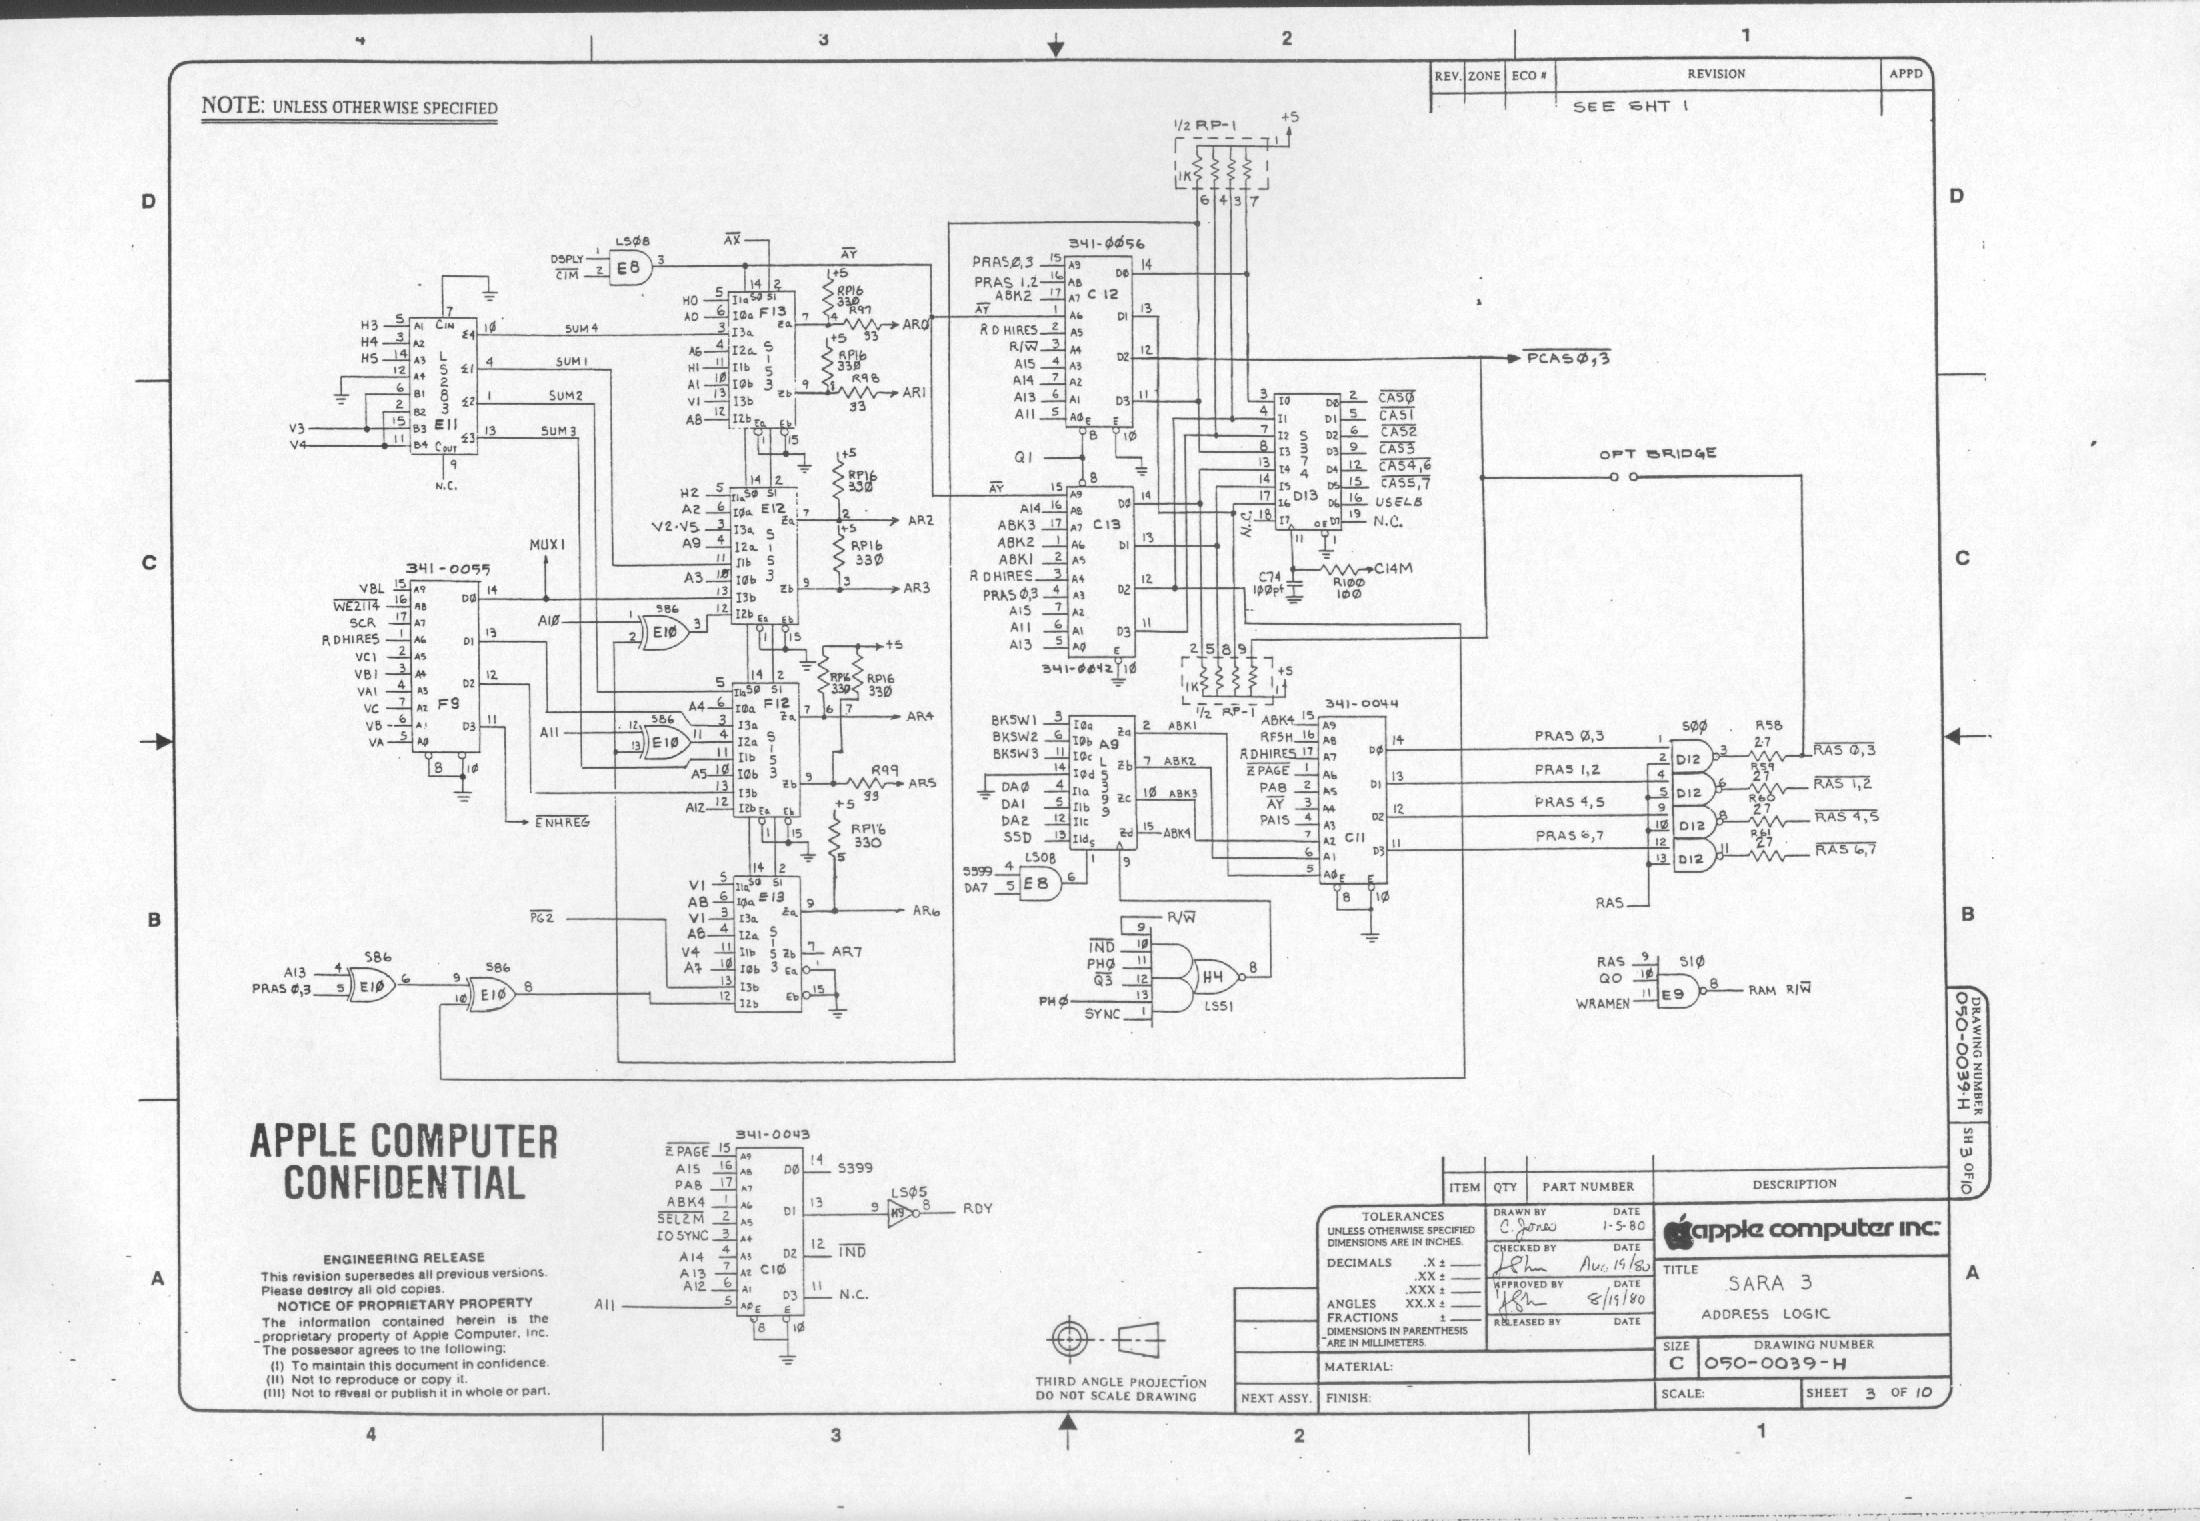 Address Logic apple iii schematic diagrams wiring diagram for apple tv at crackthecode.co